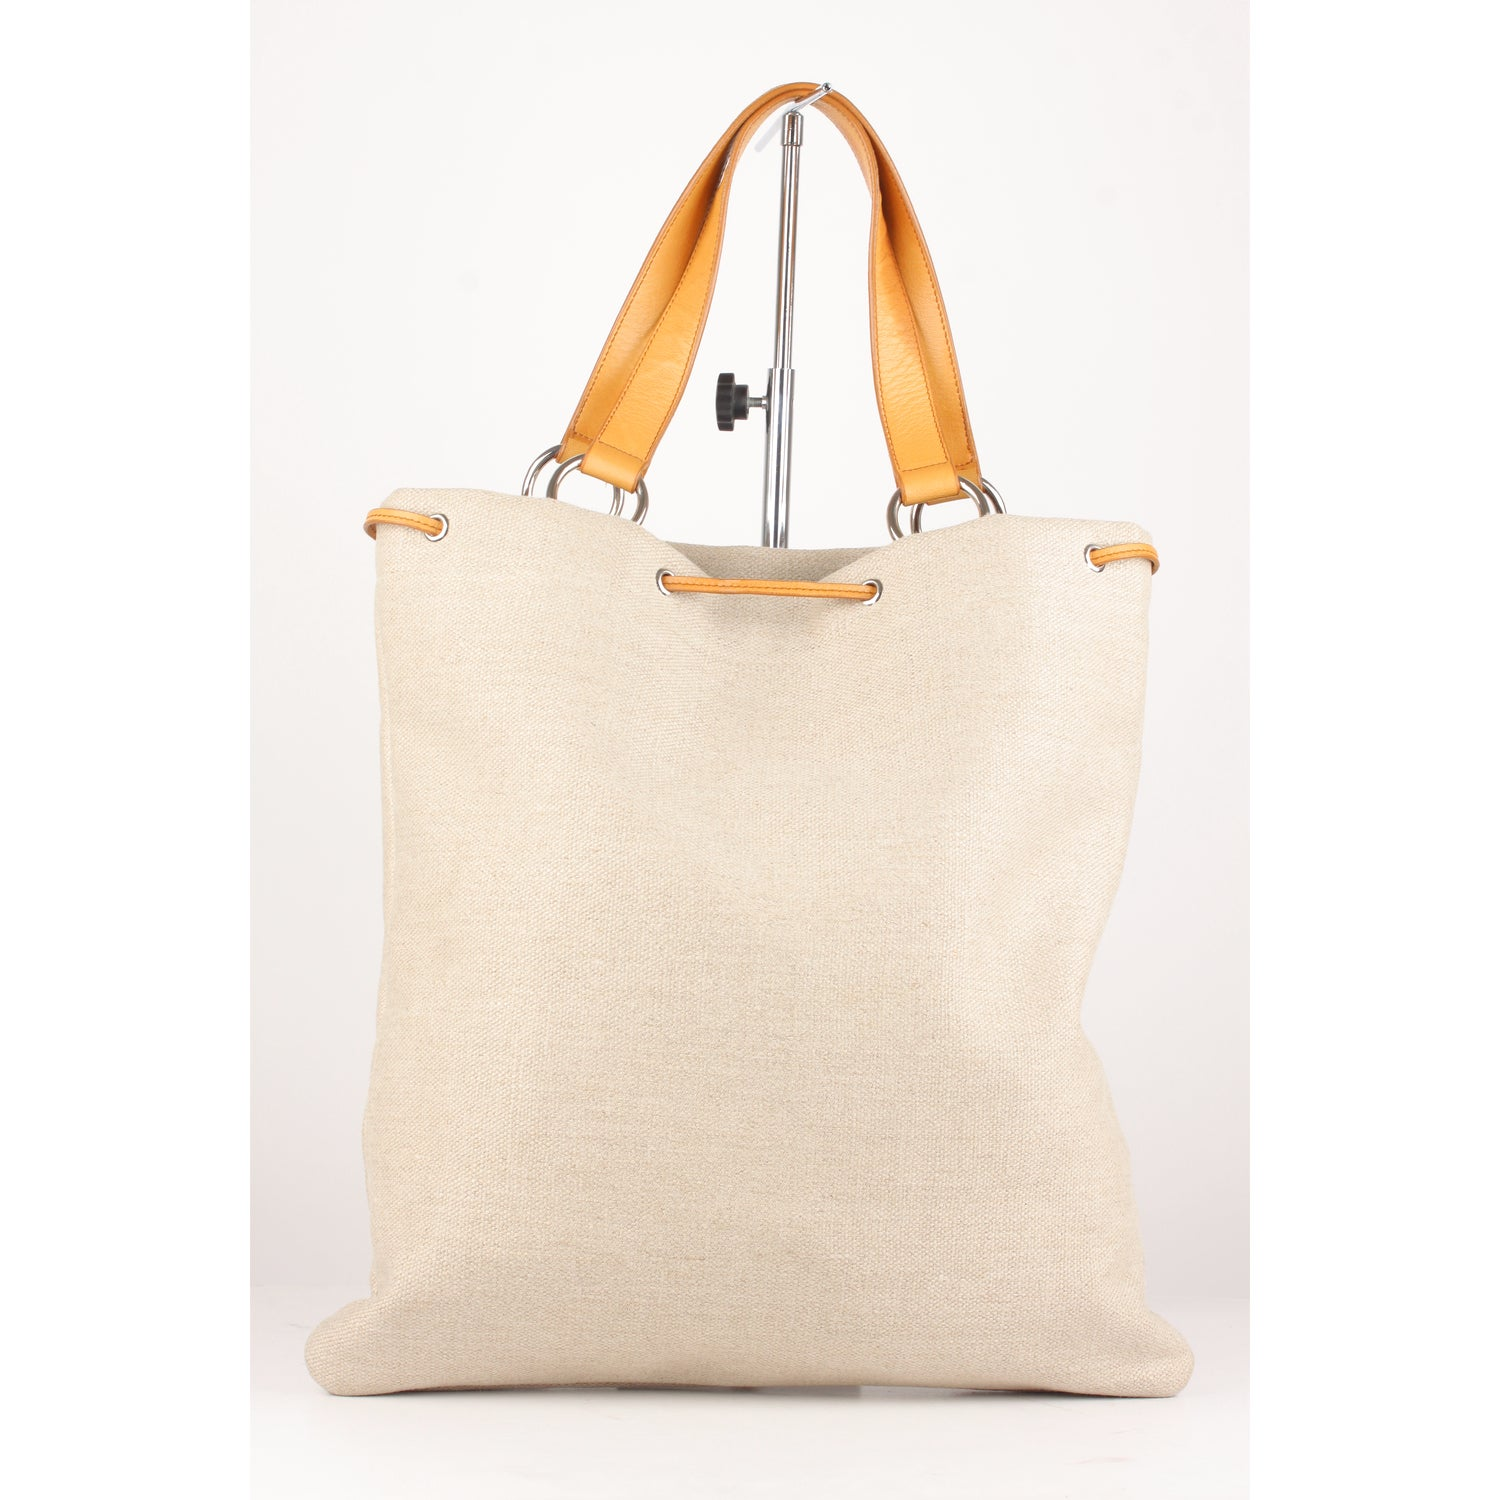 Yves Saint Laurent Tan Canvas and Leather Hearts Tote Bag at 1stdibs dabd24f32fe91